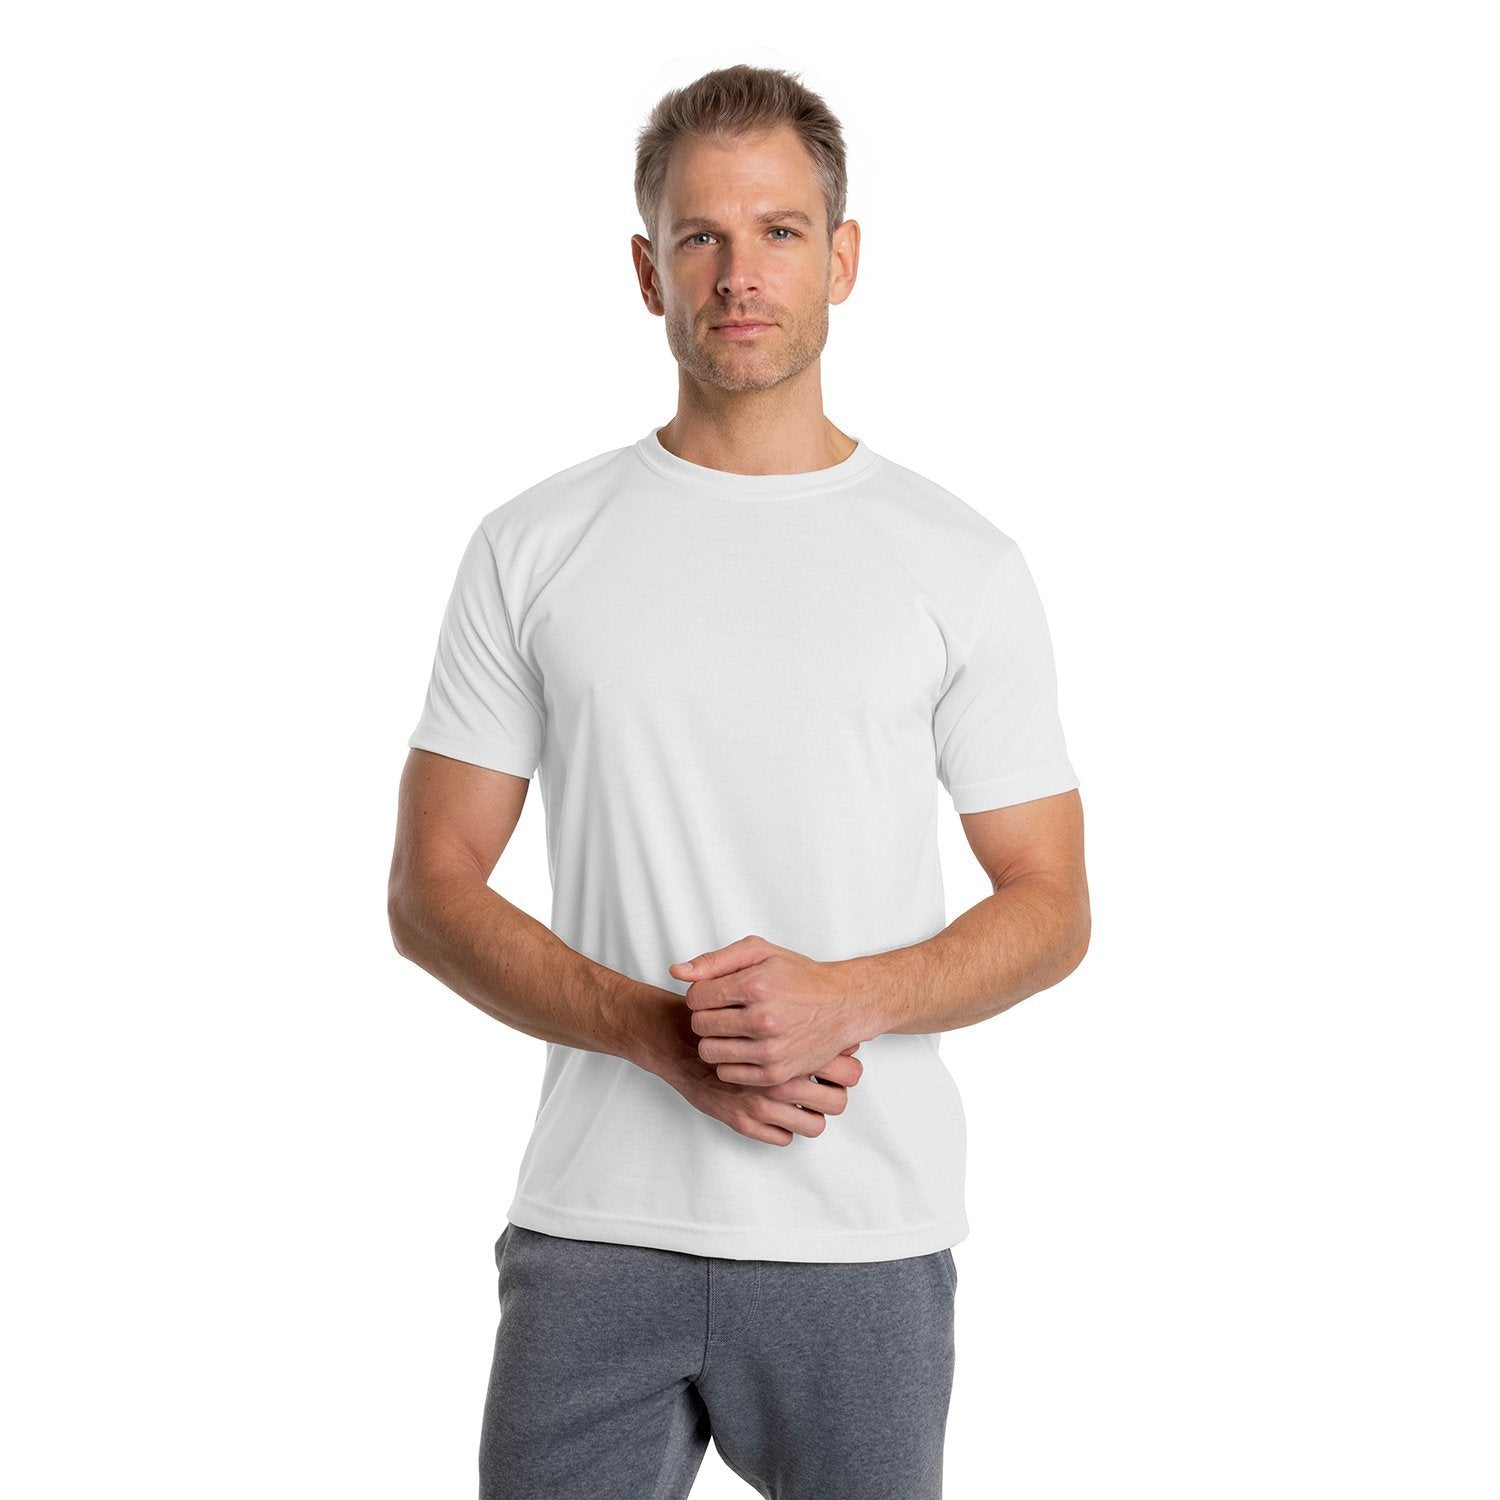 A1SJBBWH Basic Performance T-Shirt - White